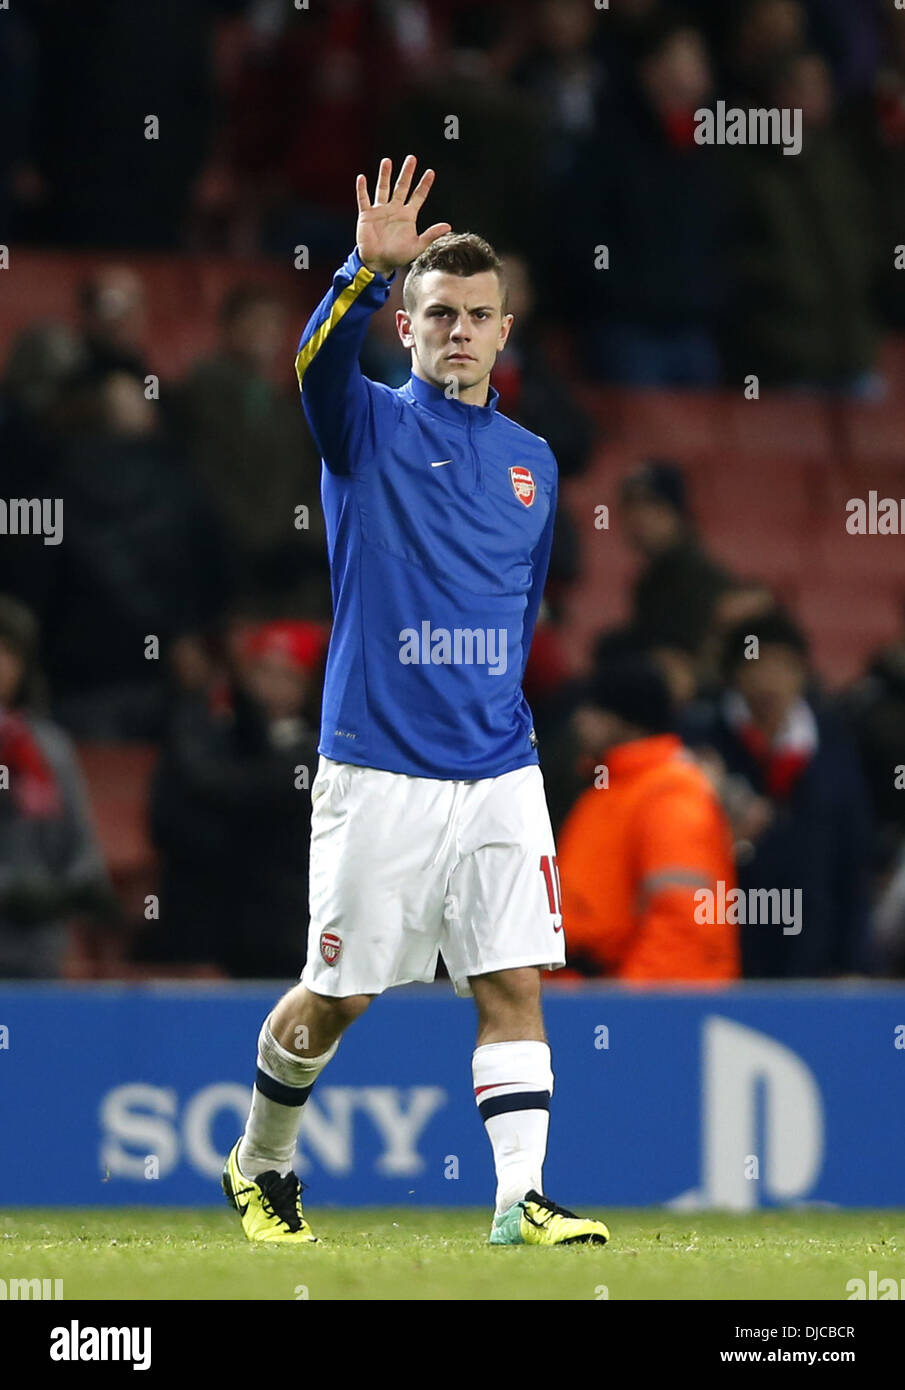 London, UK. 26th Nov, 2013. ( Jack Wilshere of Arsenal greets the spectators after the UEFA Champions League Group F match between Arsenal and Marseille at Emirates Stadium in London, Britain on Nov. 26, 2013. Arsenal won 2-0 Credit:  Xinhua/Alamy Live News - Stock Image